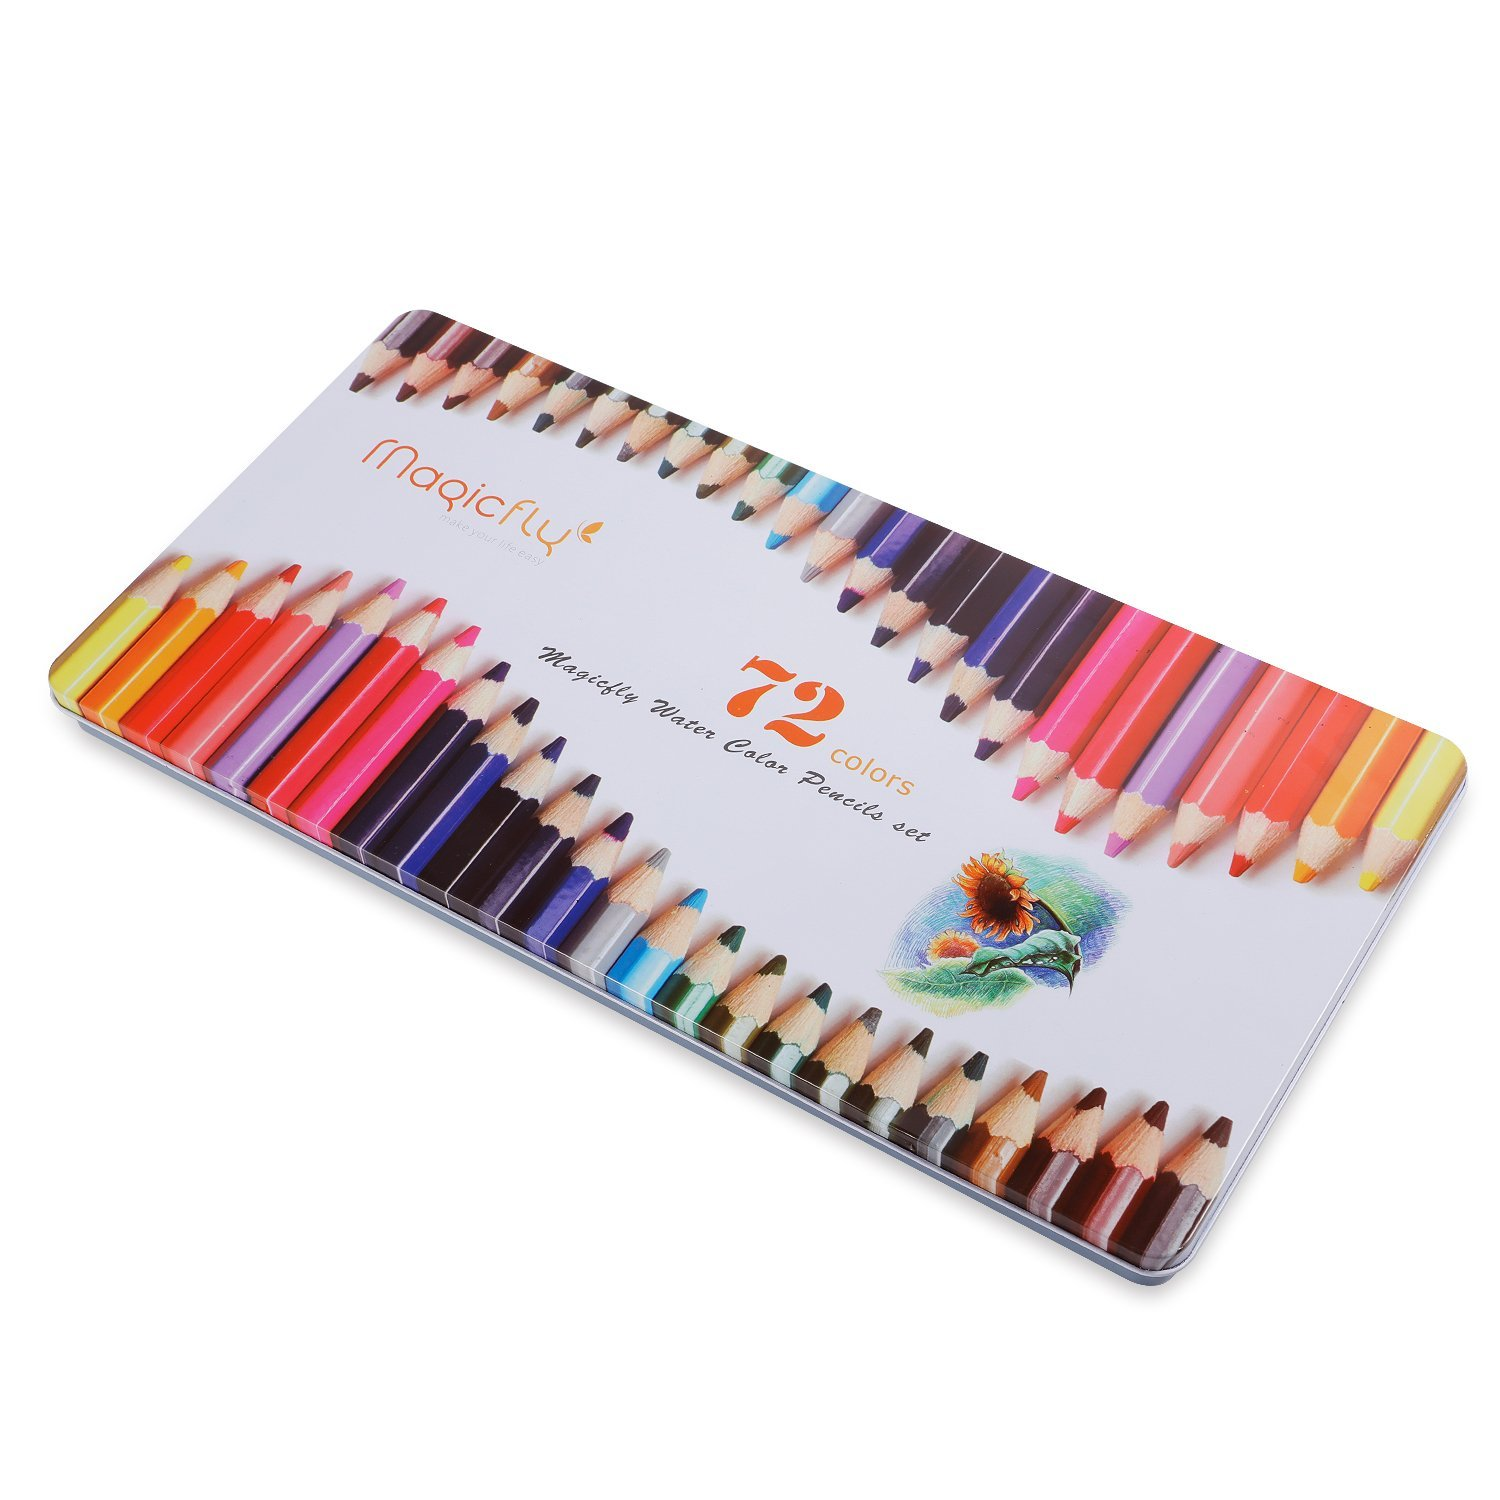 Magicfly Watercolor Pencils, 72 Colored Pencils Set Premier Soft Core with 2 Brushes, Metal Tin Case, and Bonus Pencil Sharper by Magicfly (Image #7)